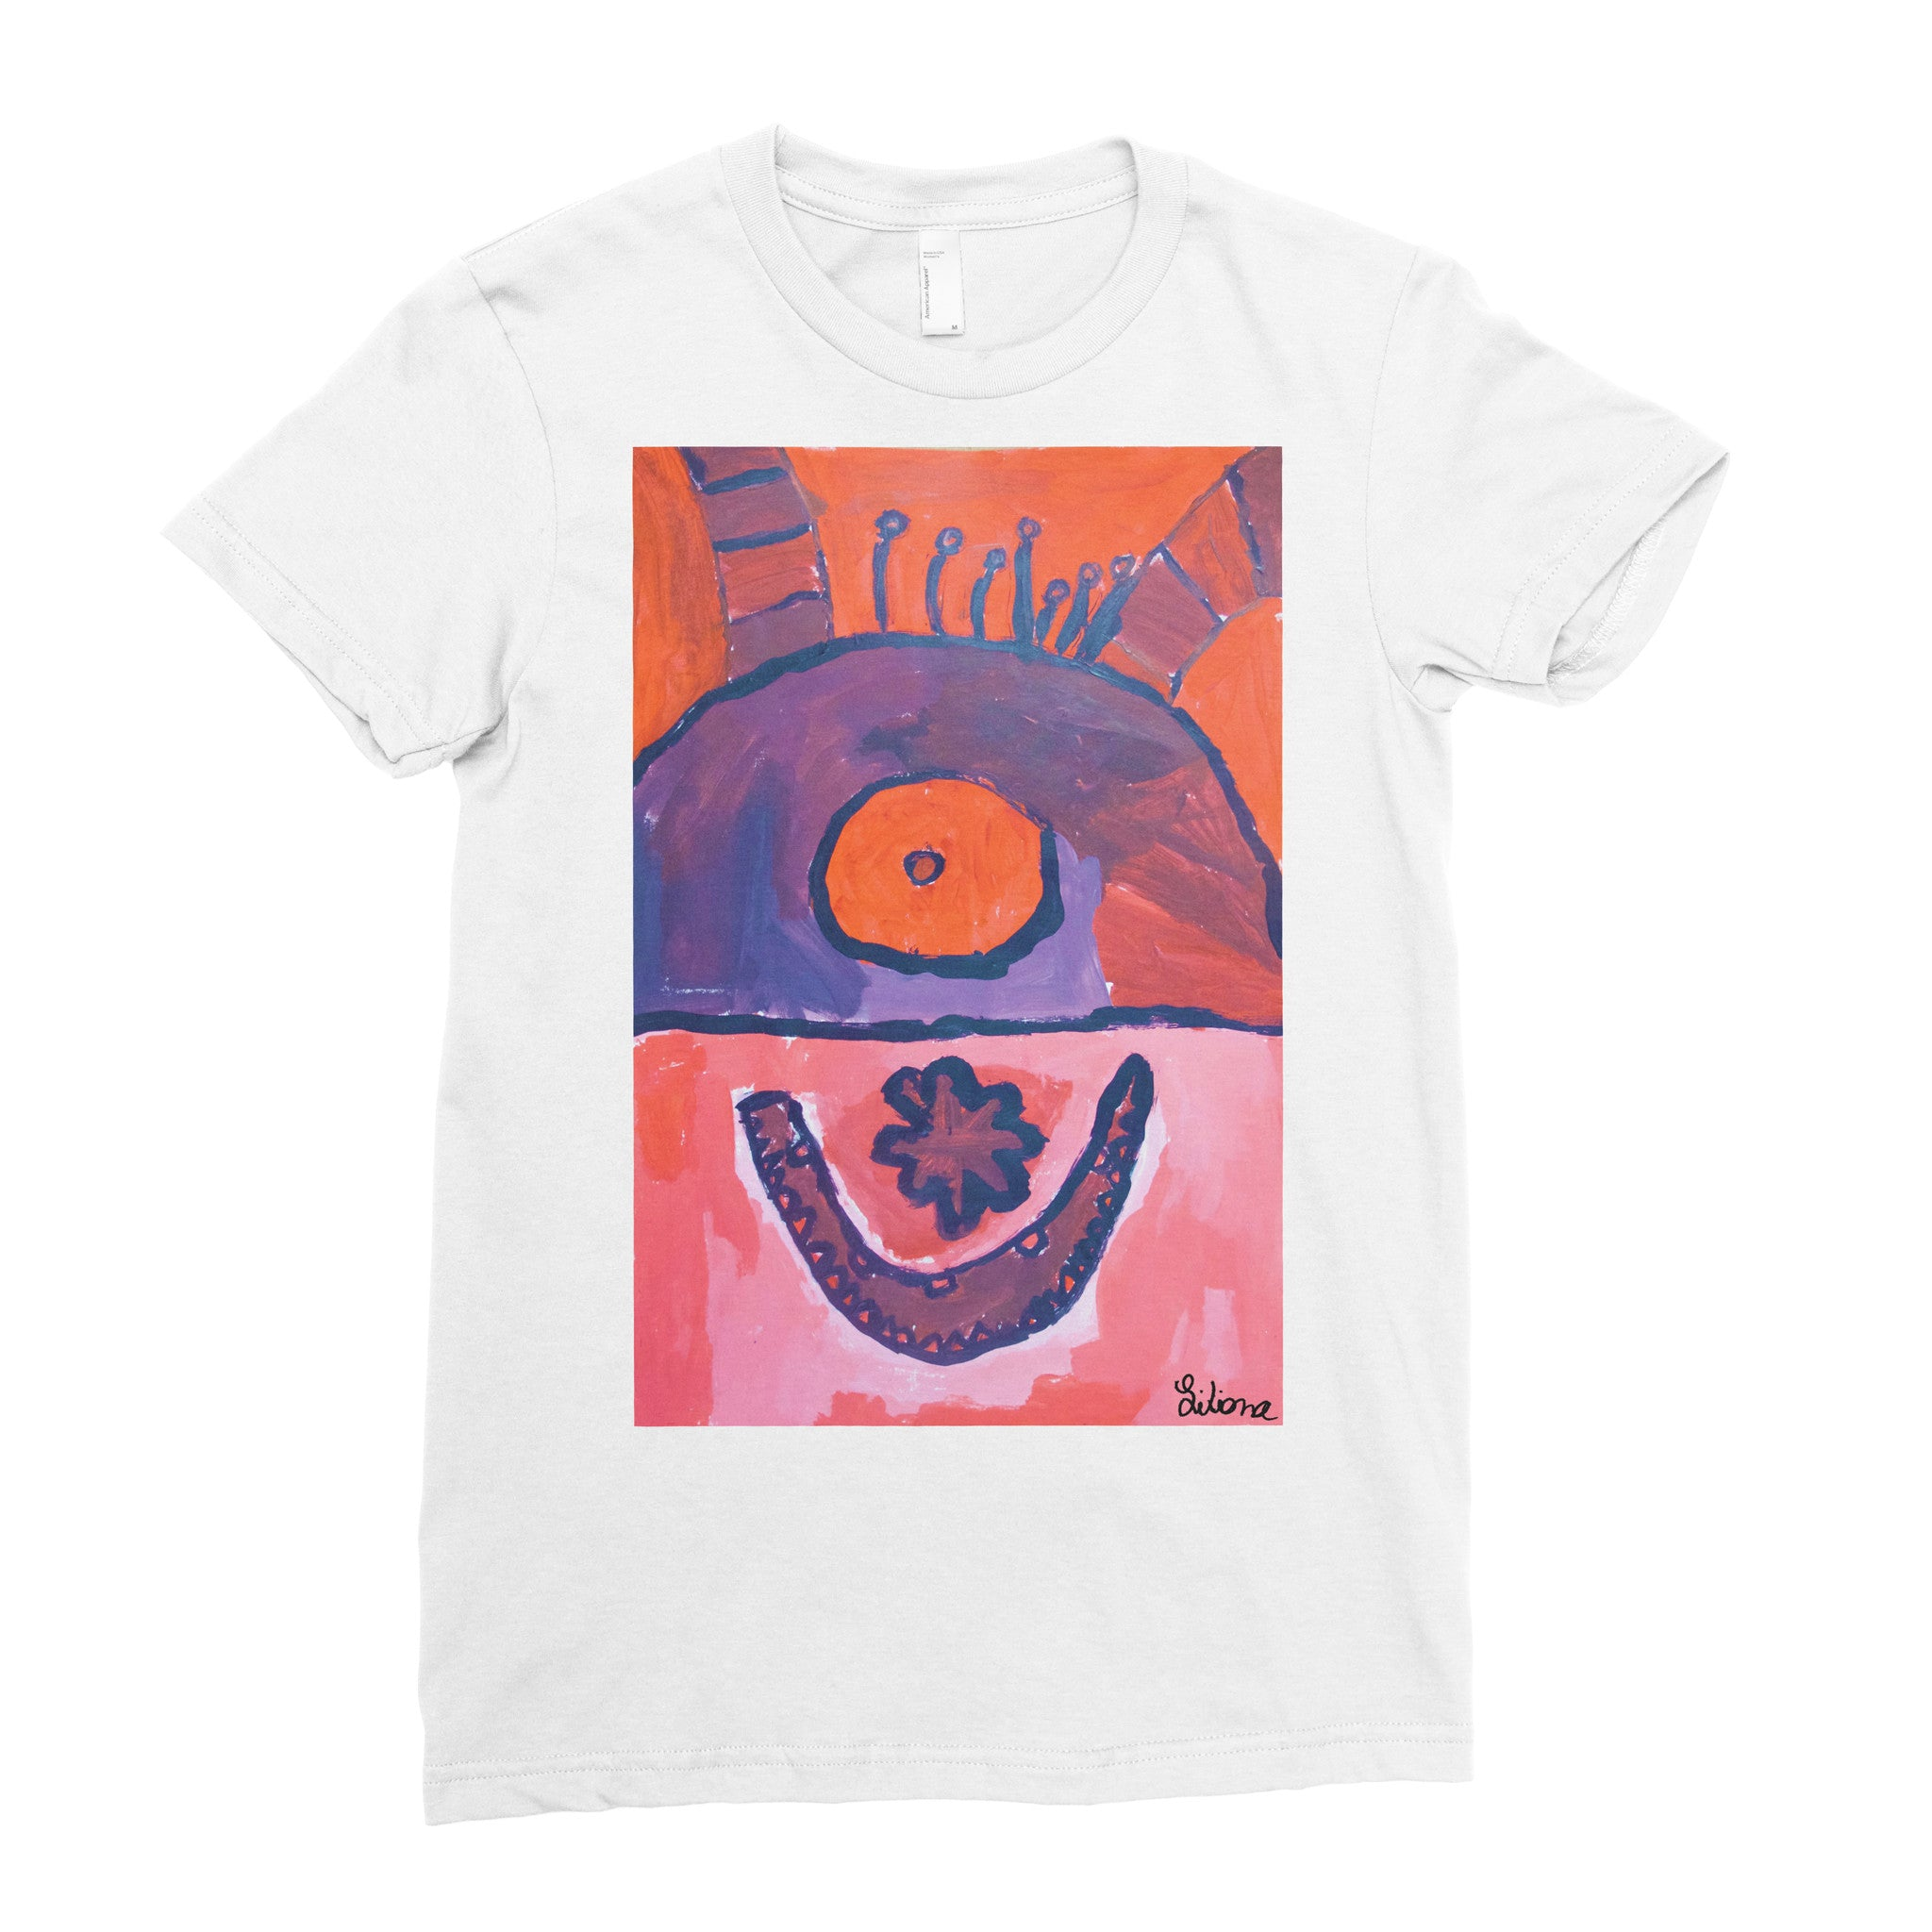 Liliana, 1st grade - Adult T-shirt - Rightside Shirts - 1